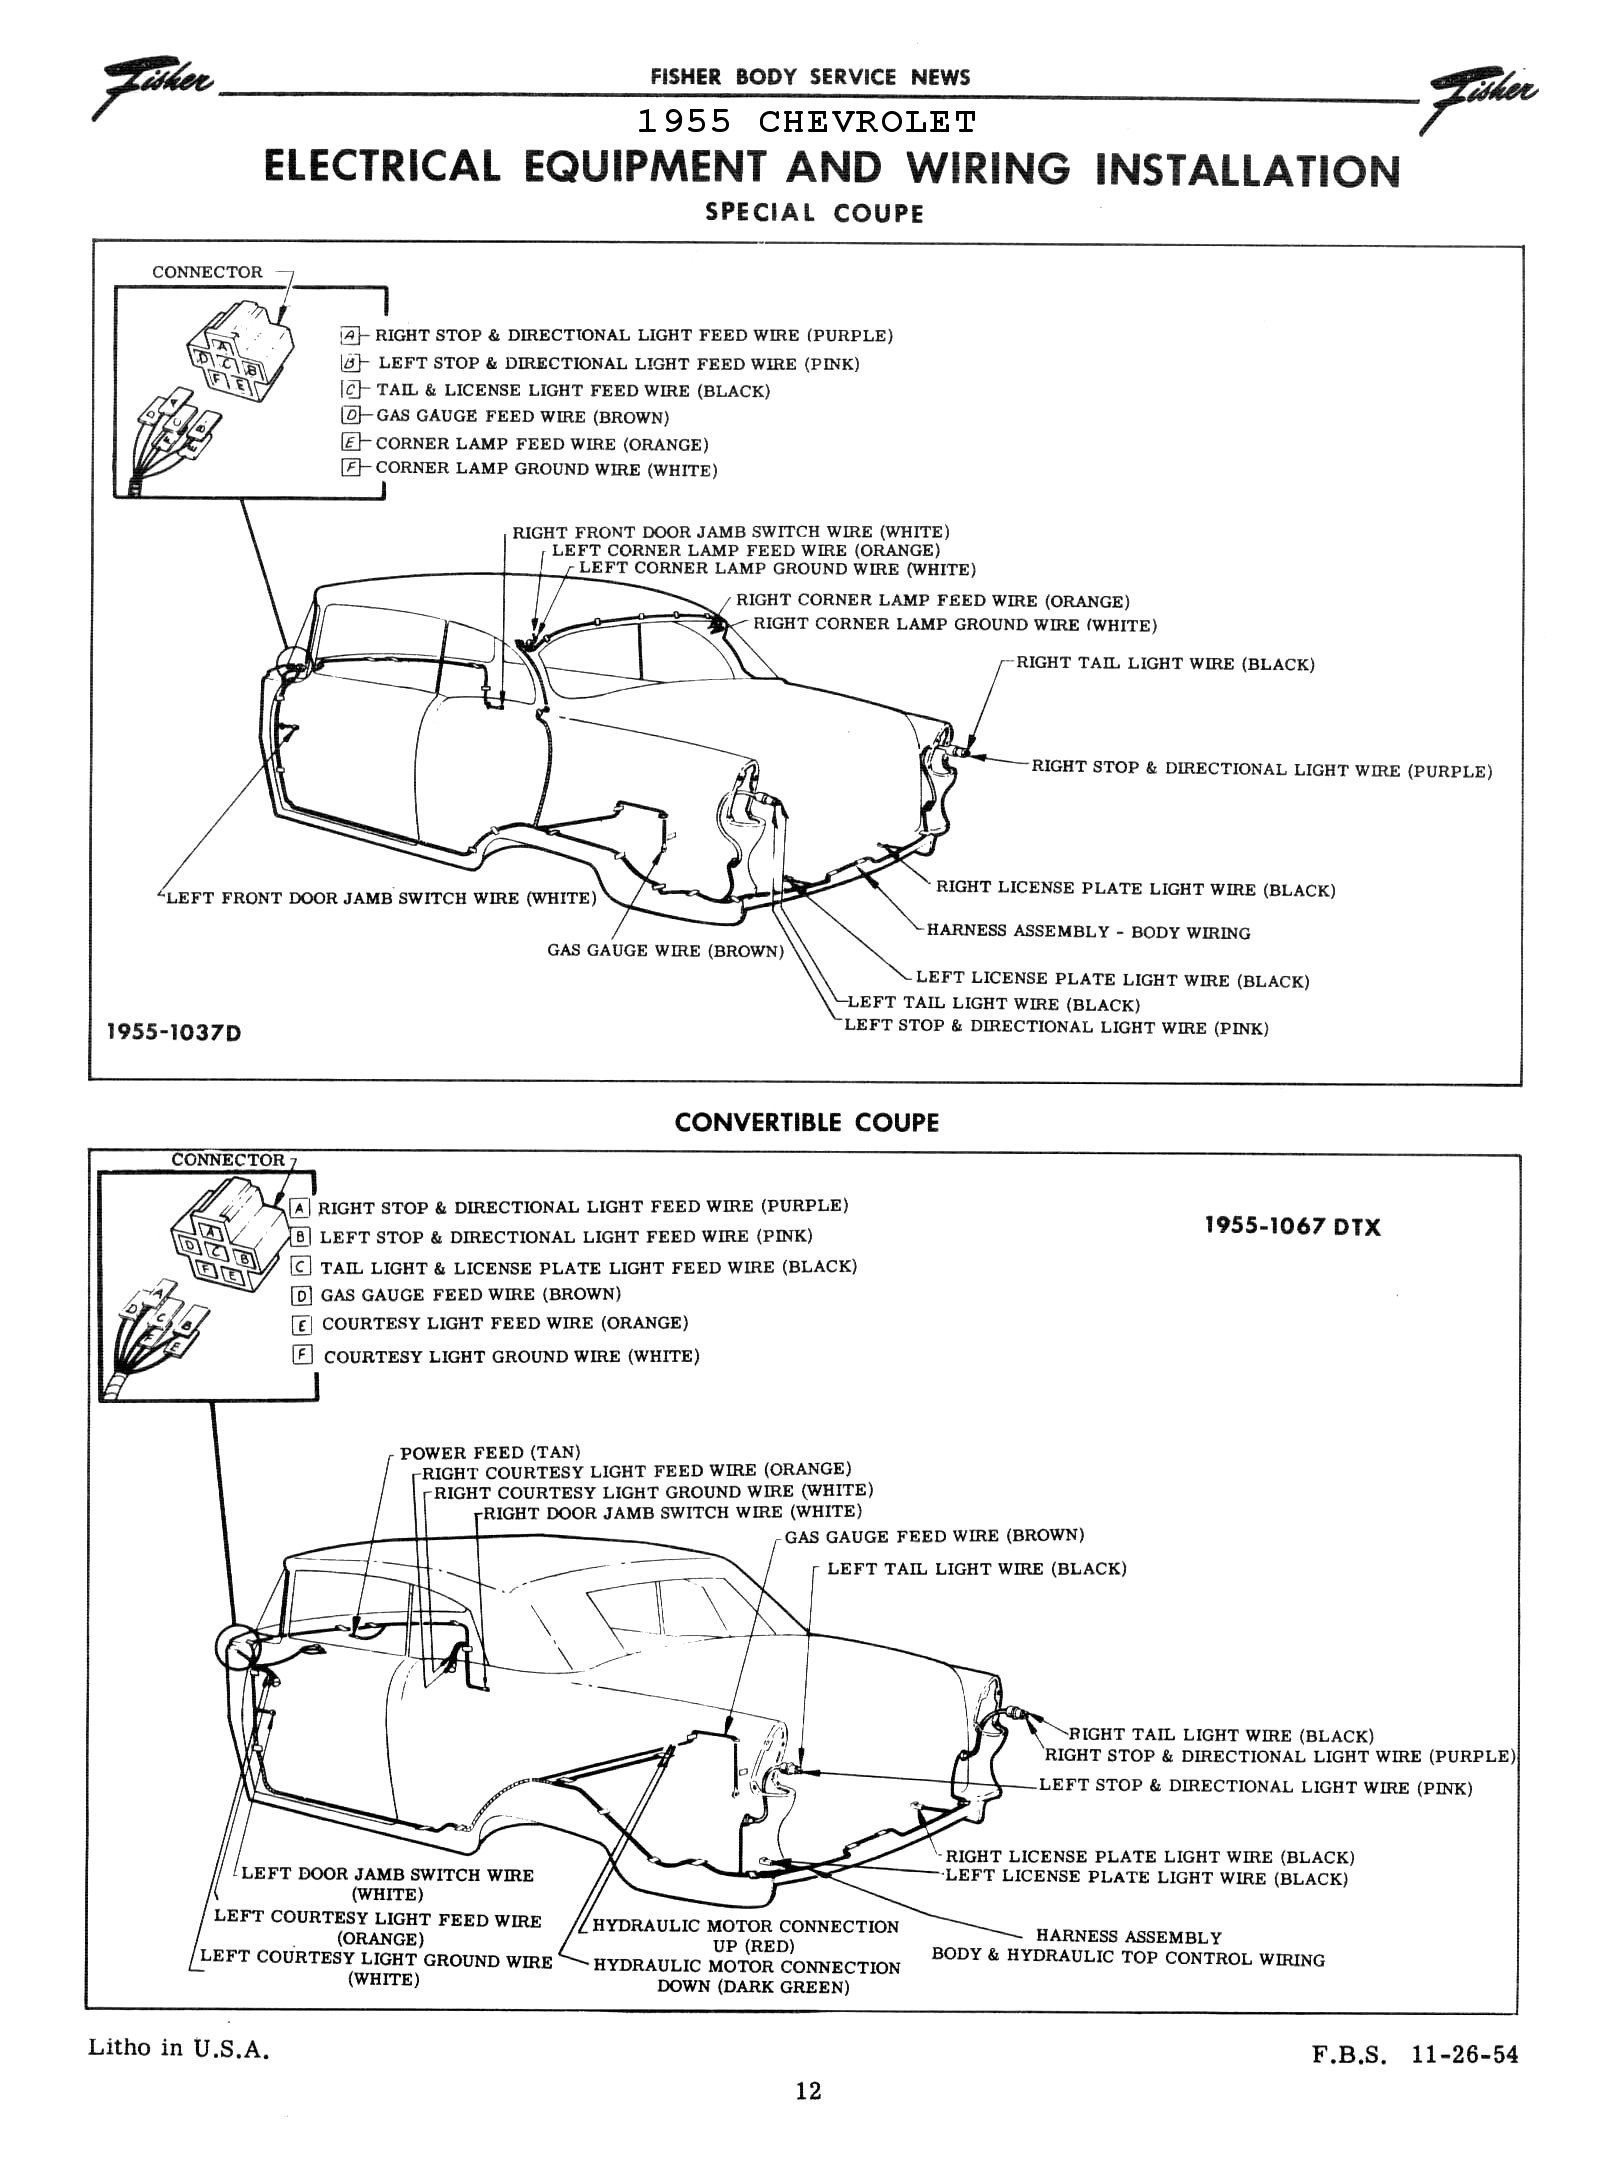 55fsn140612 chevy wiring diagrams 1953 chevy bel air wiring diagram at suagrazia.org